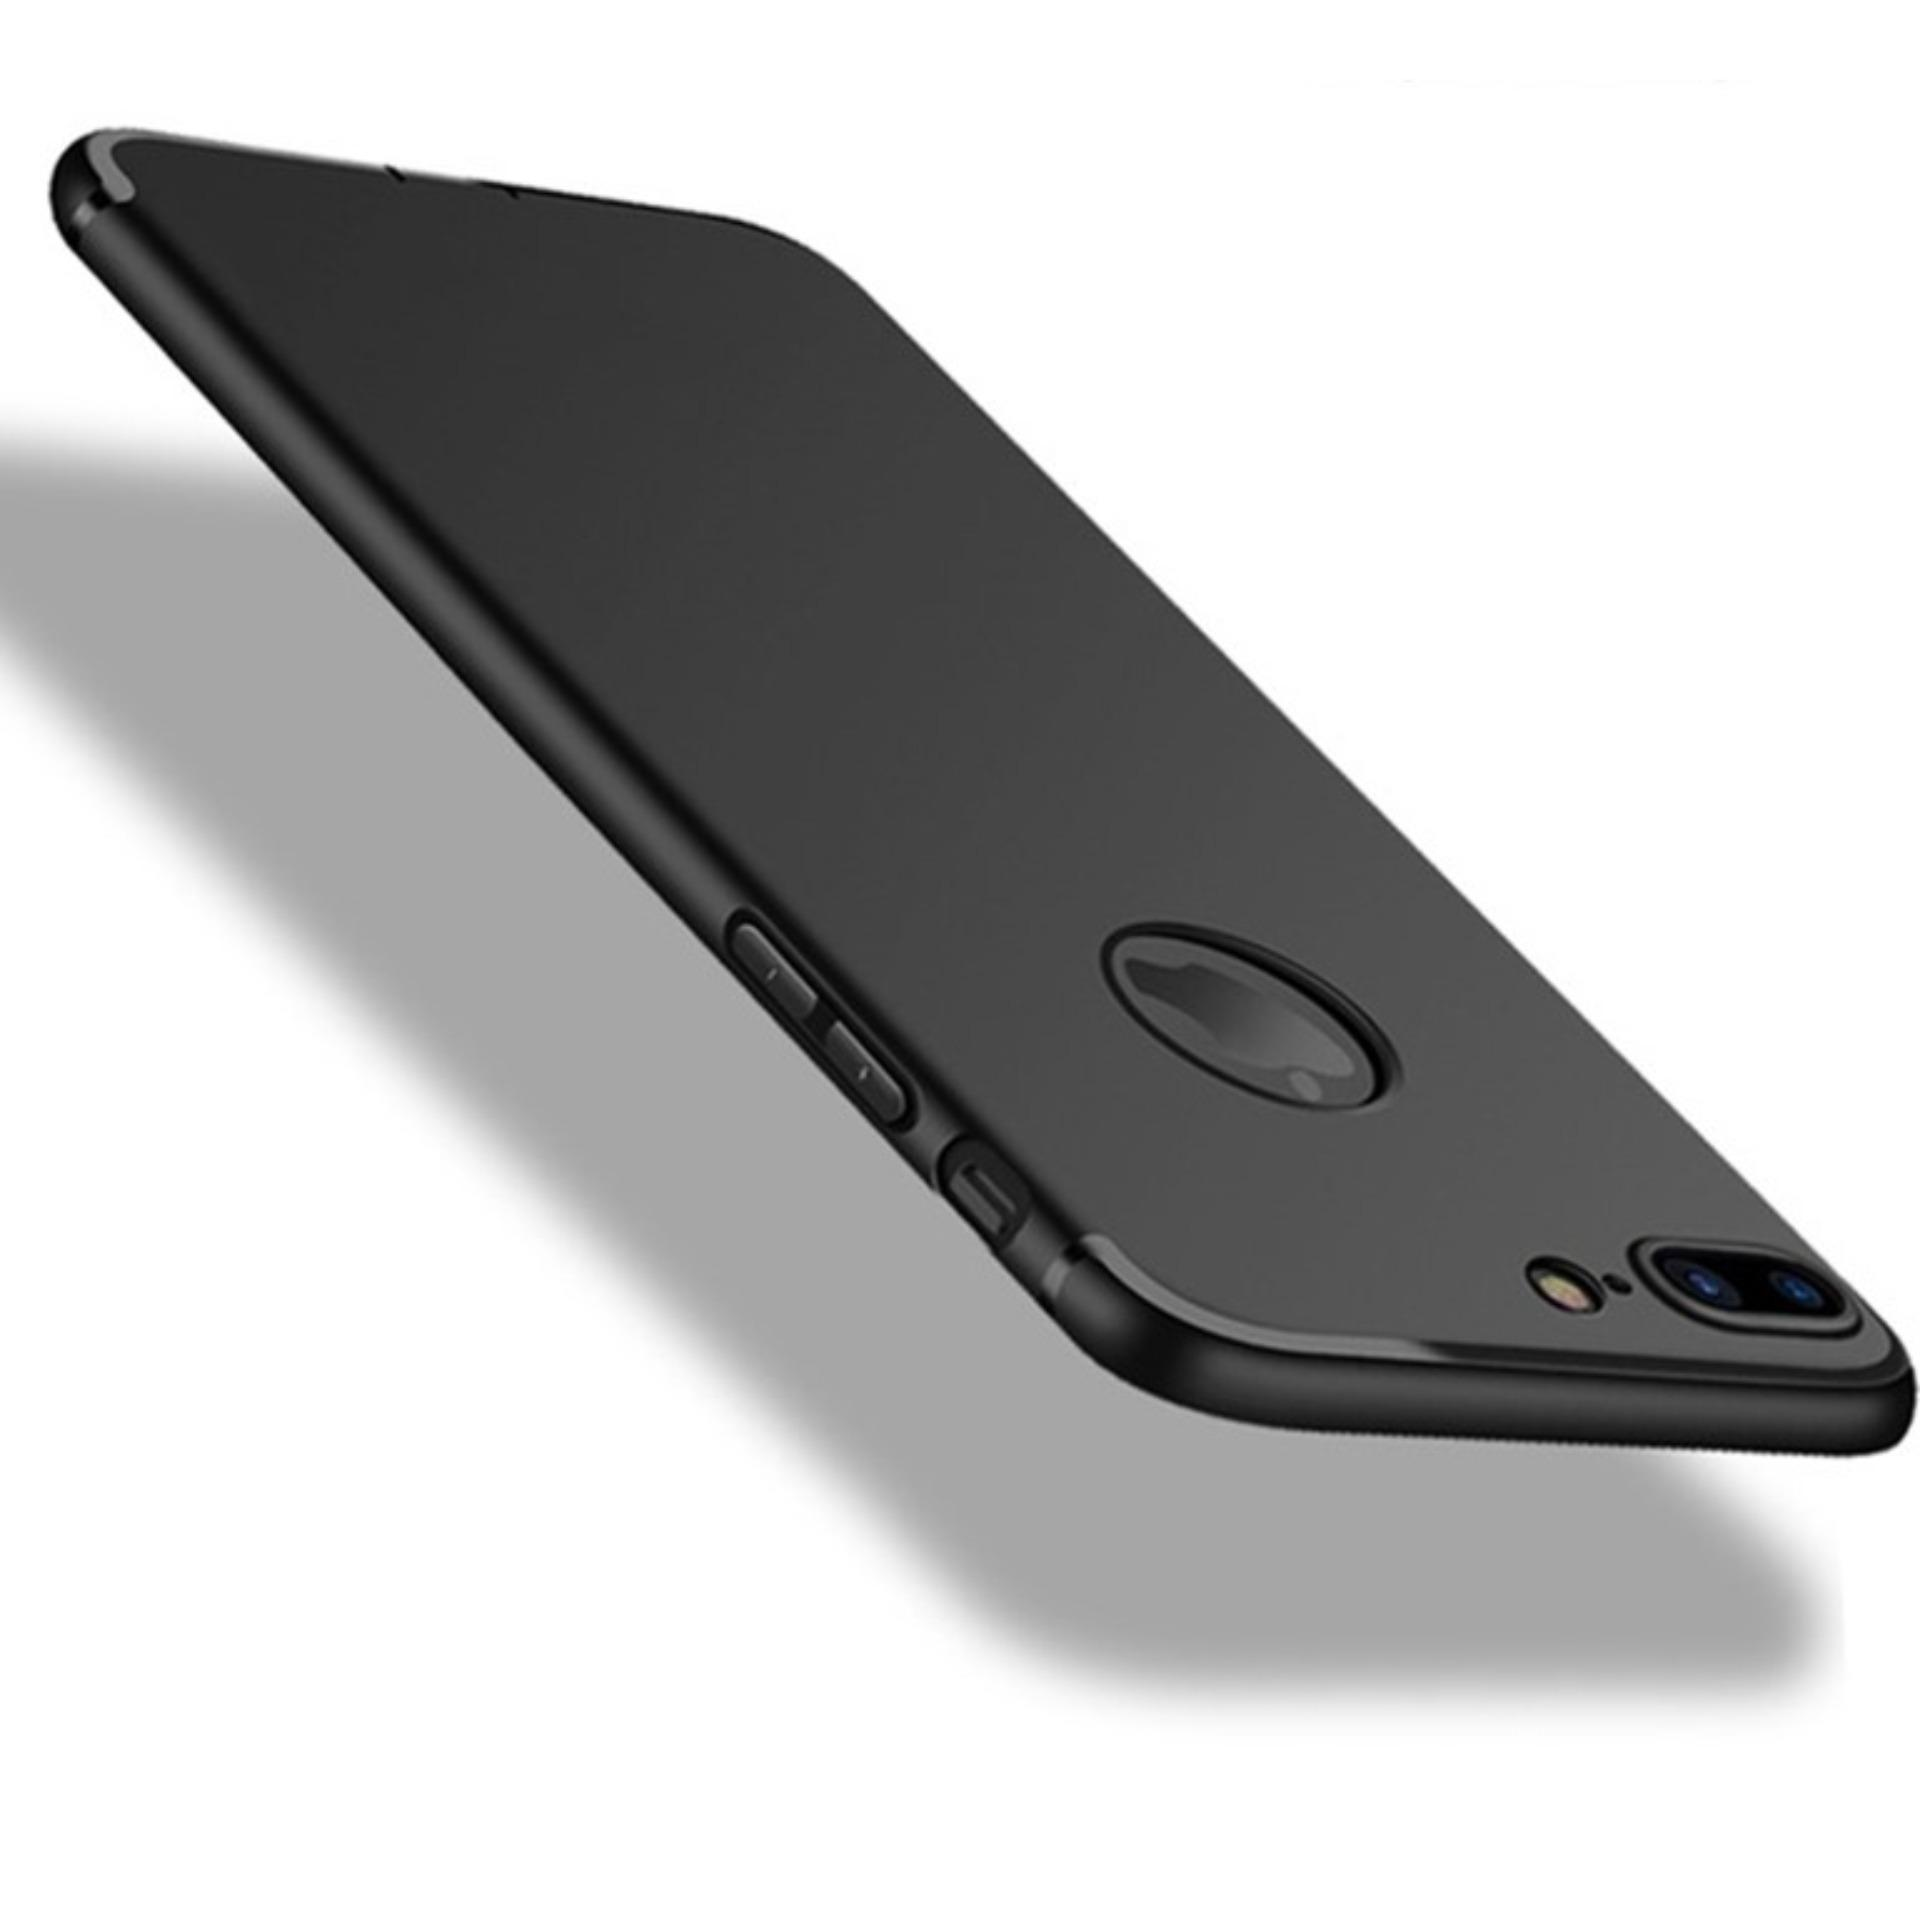 Case Ultra Thin Soft TPU Black Silicone Matte Frosted Anti-fingerprint Back Cover For Iphone 7 Plus